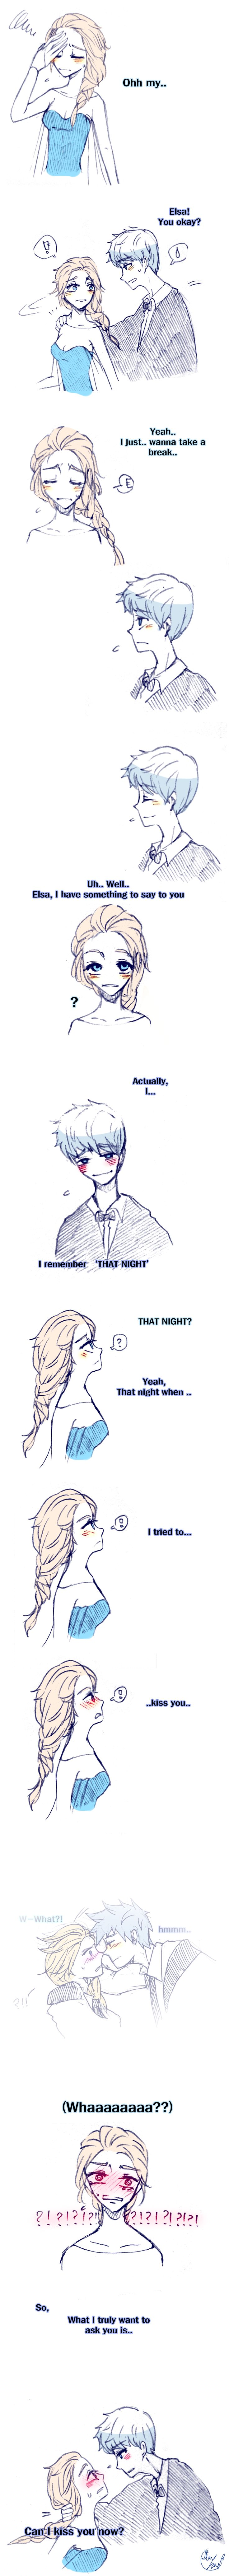 Rise of the Guardians' Jack Frost and Frozen's Elsa | J.K. Rowling's Harry Potter / [Triwizard] Ball-Jelsa (2) by Lime-Hael on DeviantArt